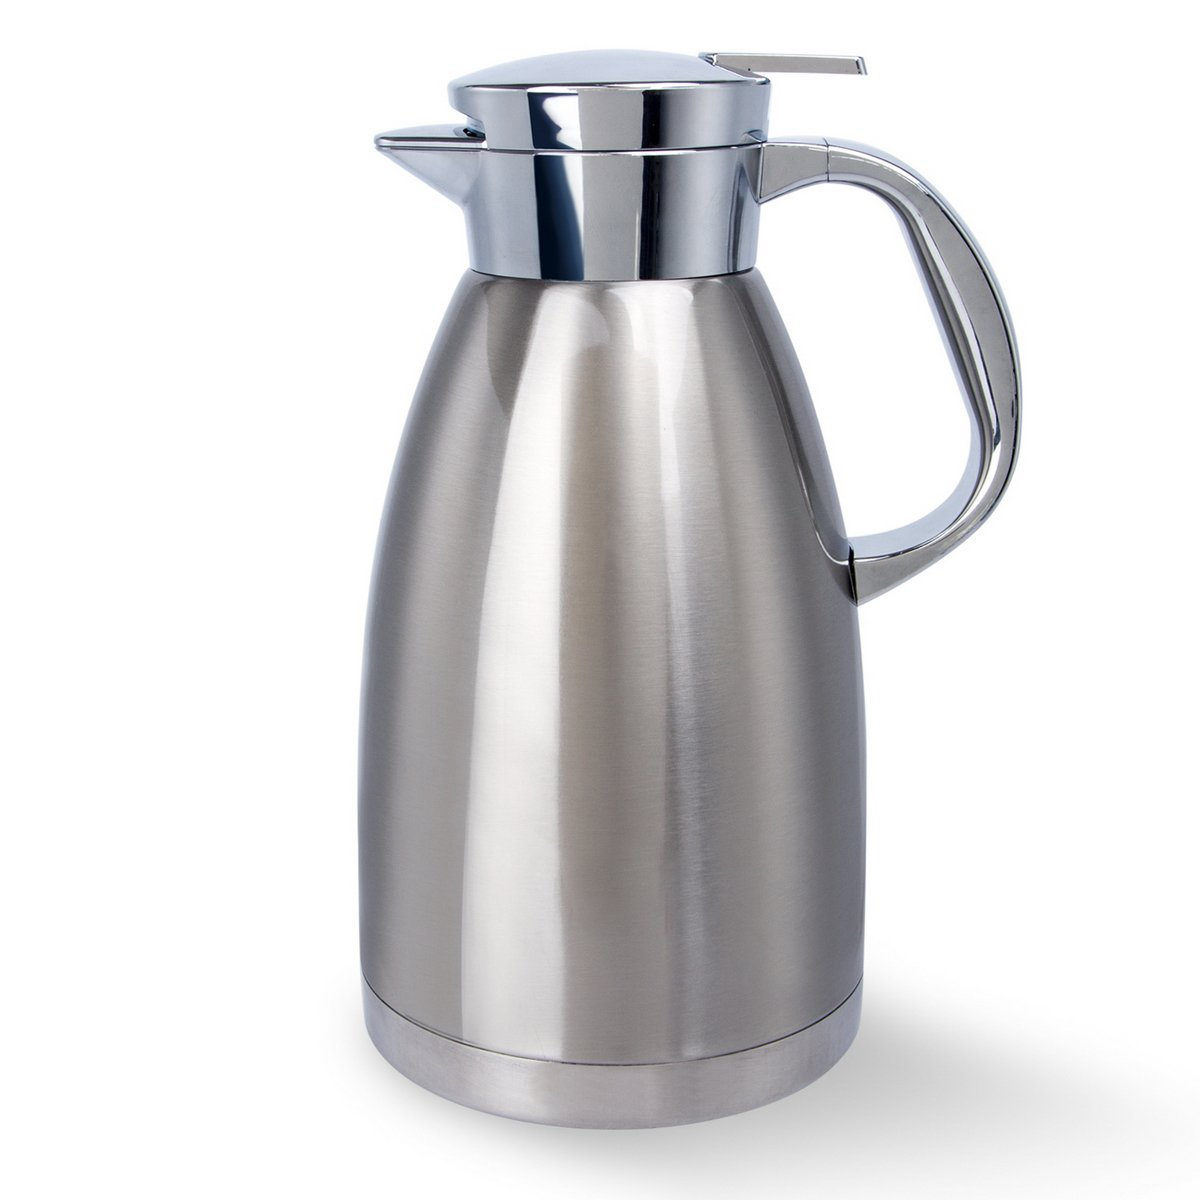 Stainless Steel Coffee Carafe 61 Oz Double Walled Vacuum Insulated Carafes by UNEED